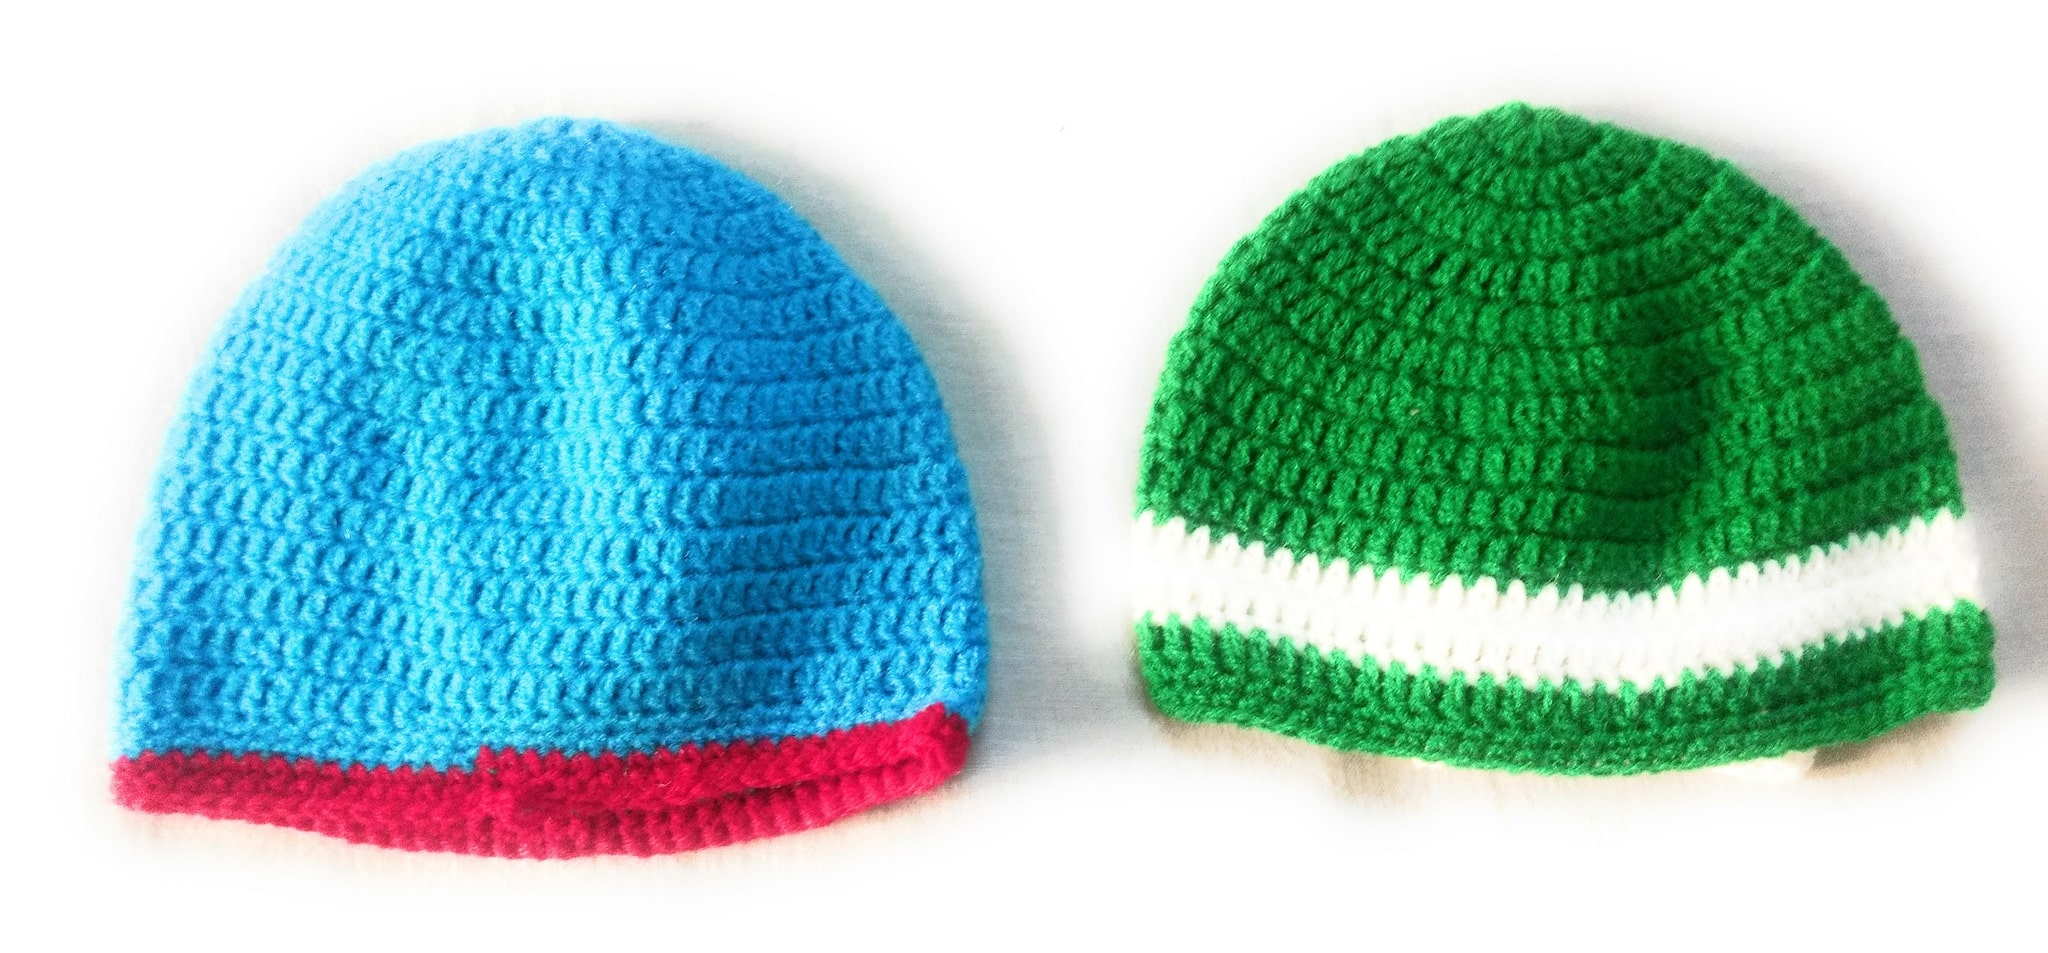 Buy New Jain Traders - Combo of Two Hand Made Crochet Woolen Designer Caps  for Baby Boys   Girls (0-6 Months c337fc74bde0